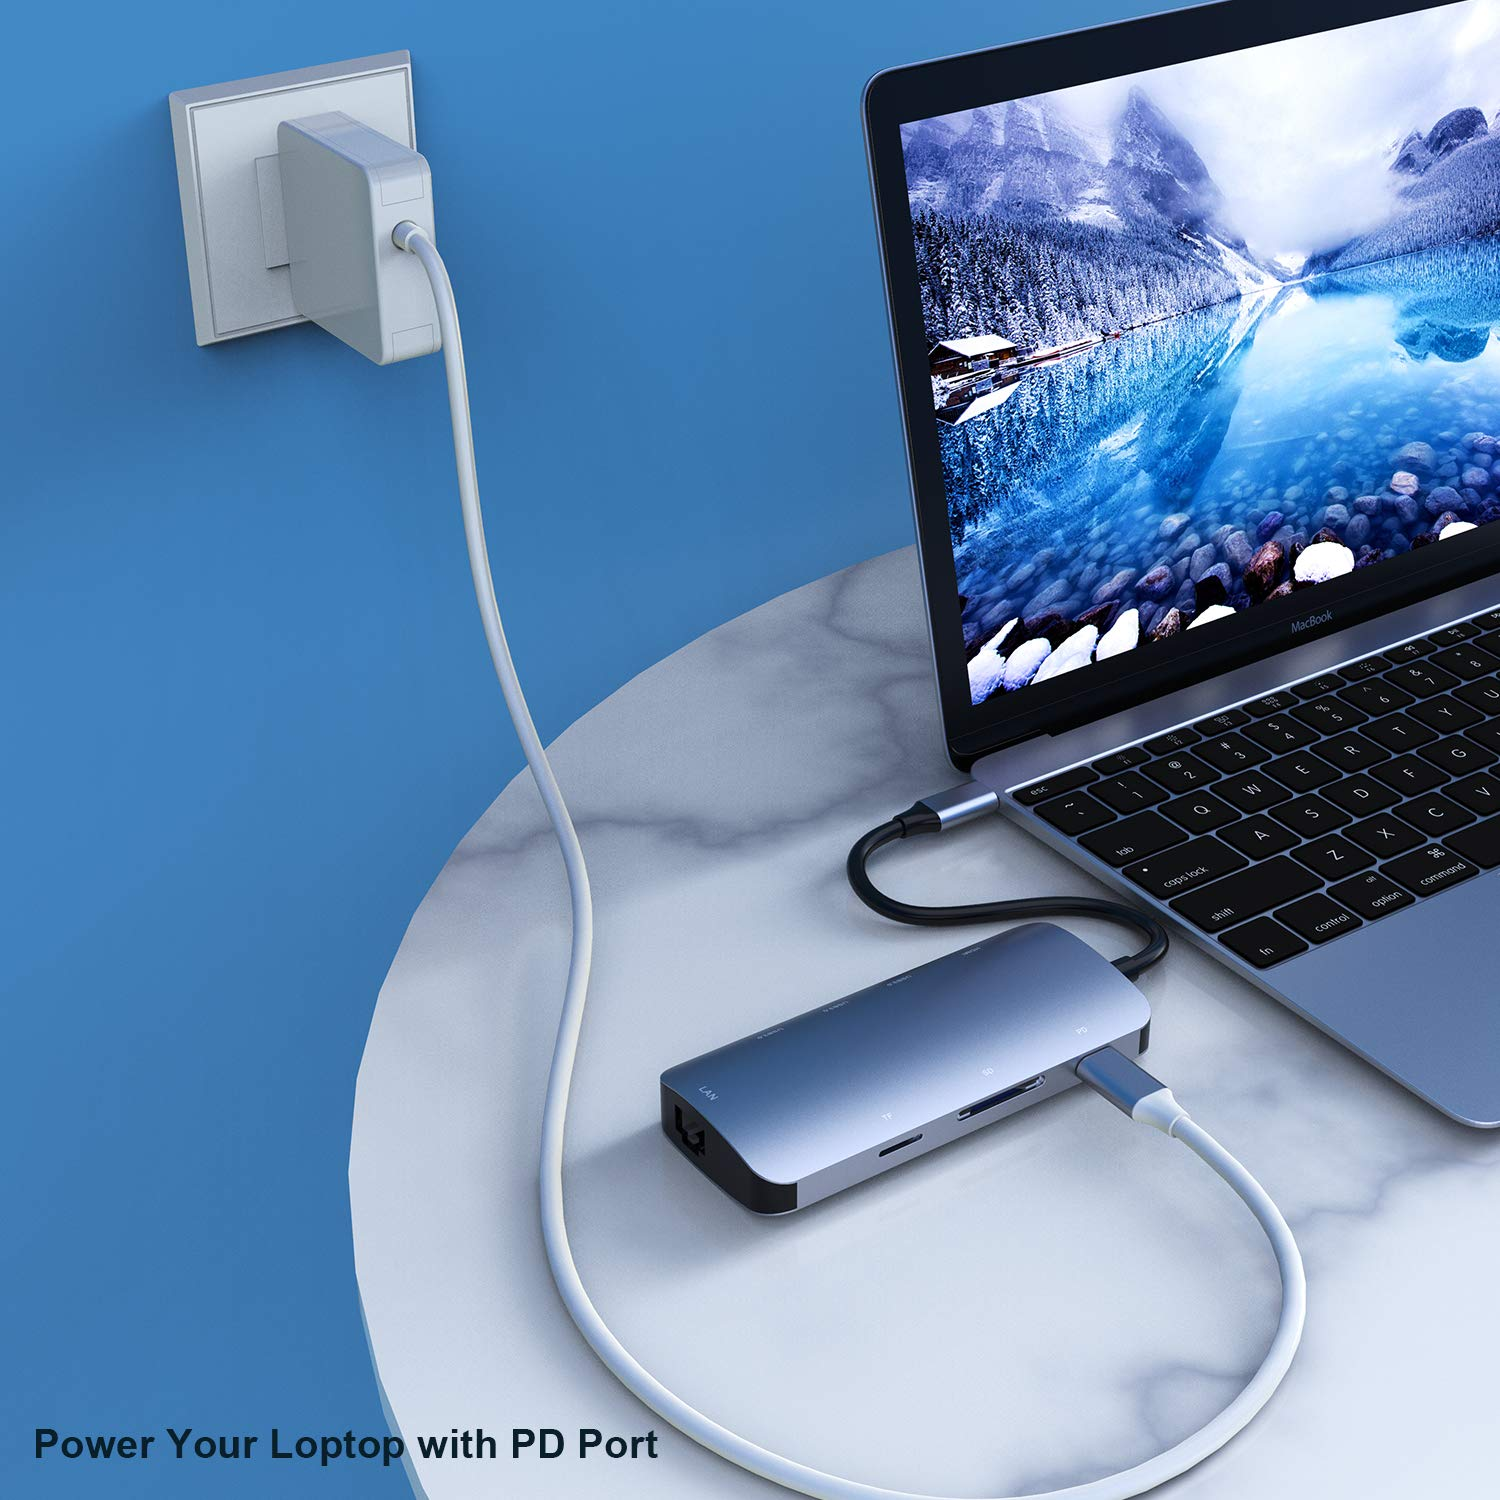 USB C Hub AdapterVILCOME 8in1 USB C Adapterwith 4K USB C to HDMISDTF Card Reader and Ethernet3 USB